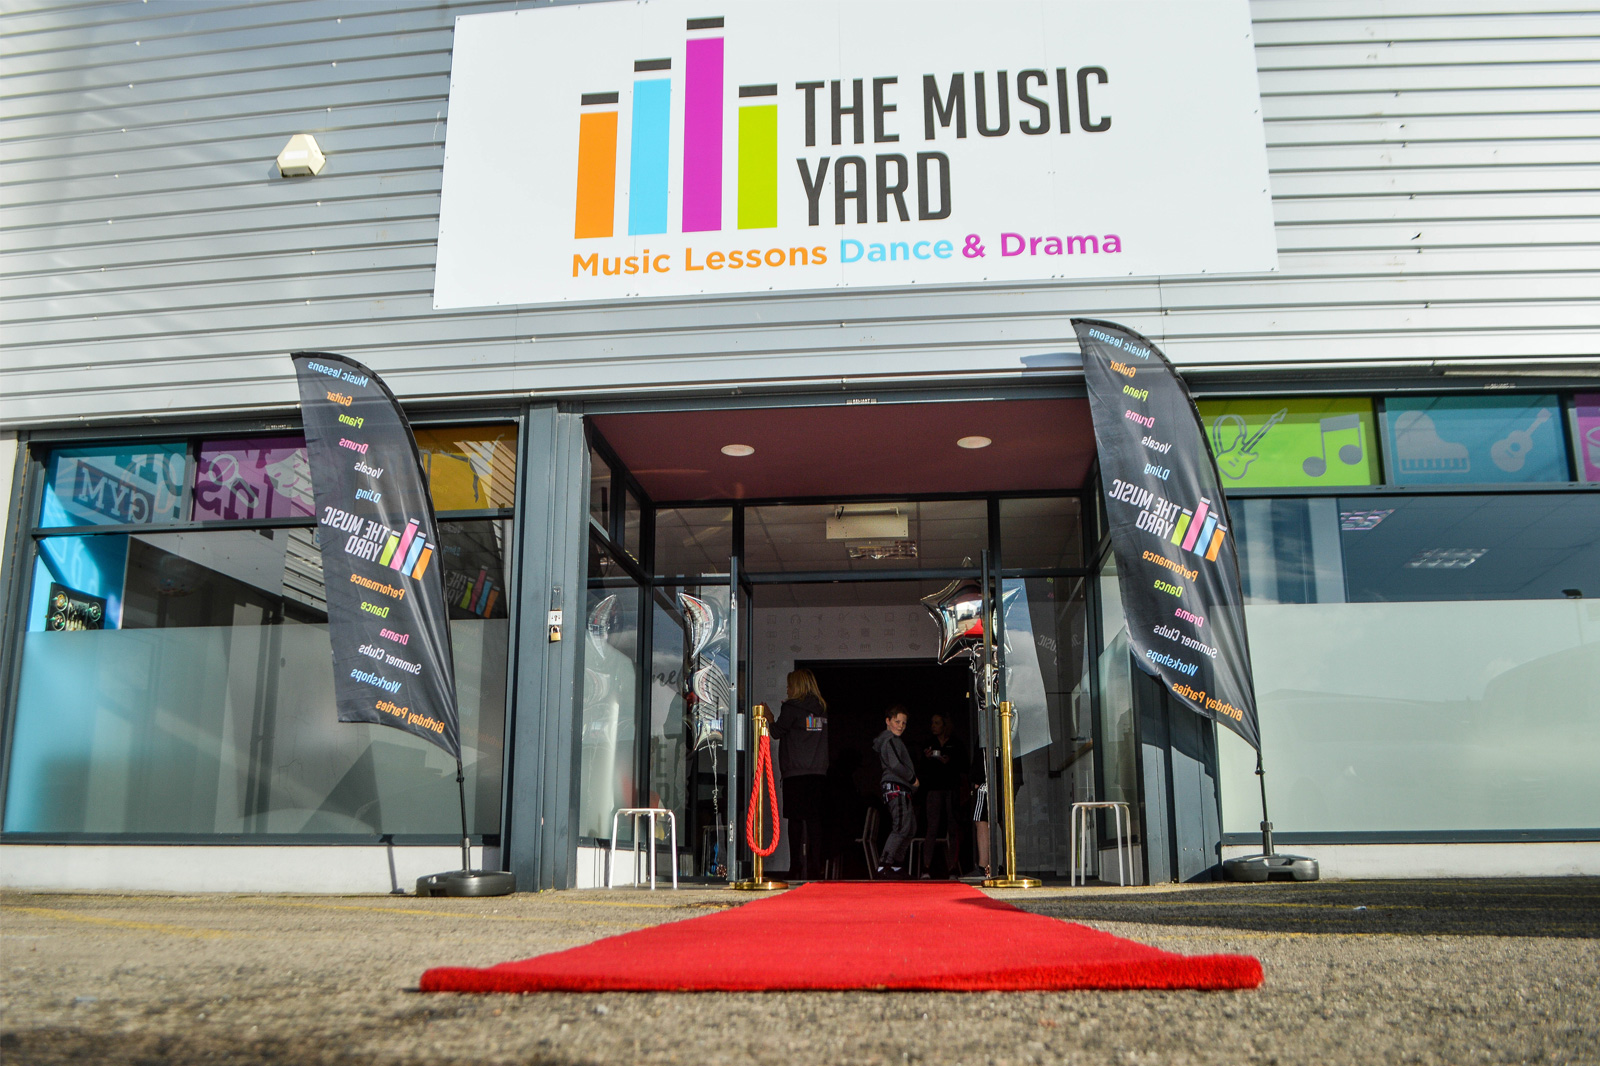 the music yard - music lessons